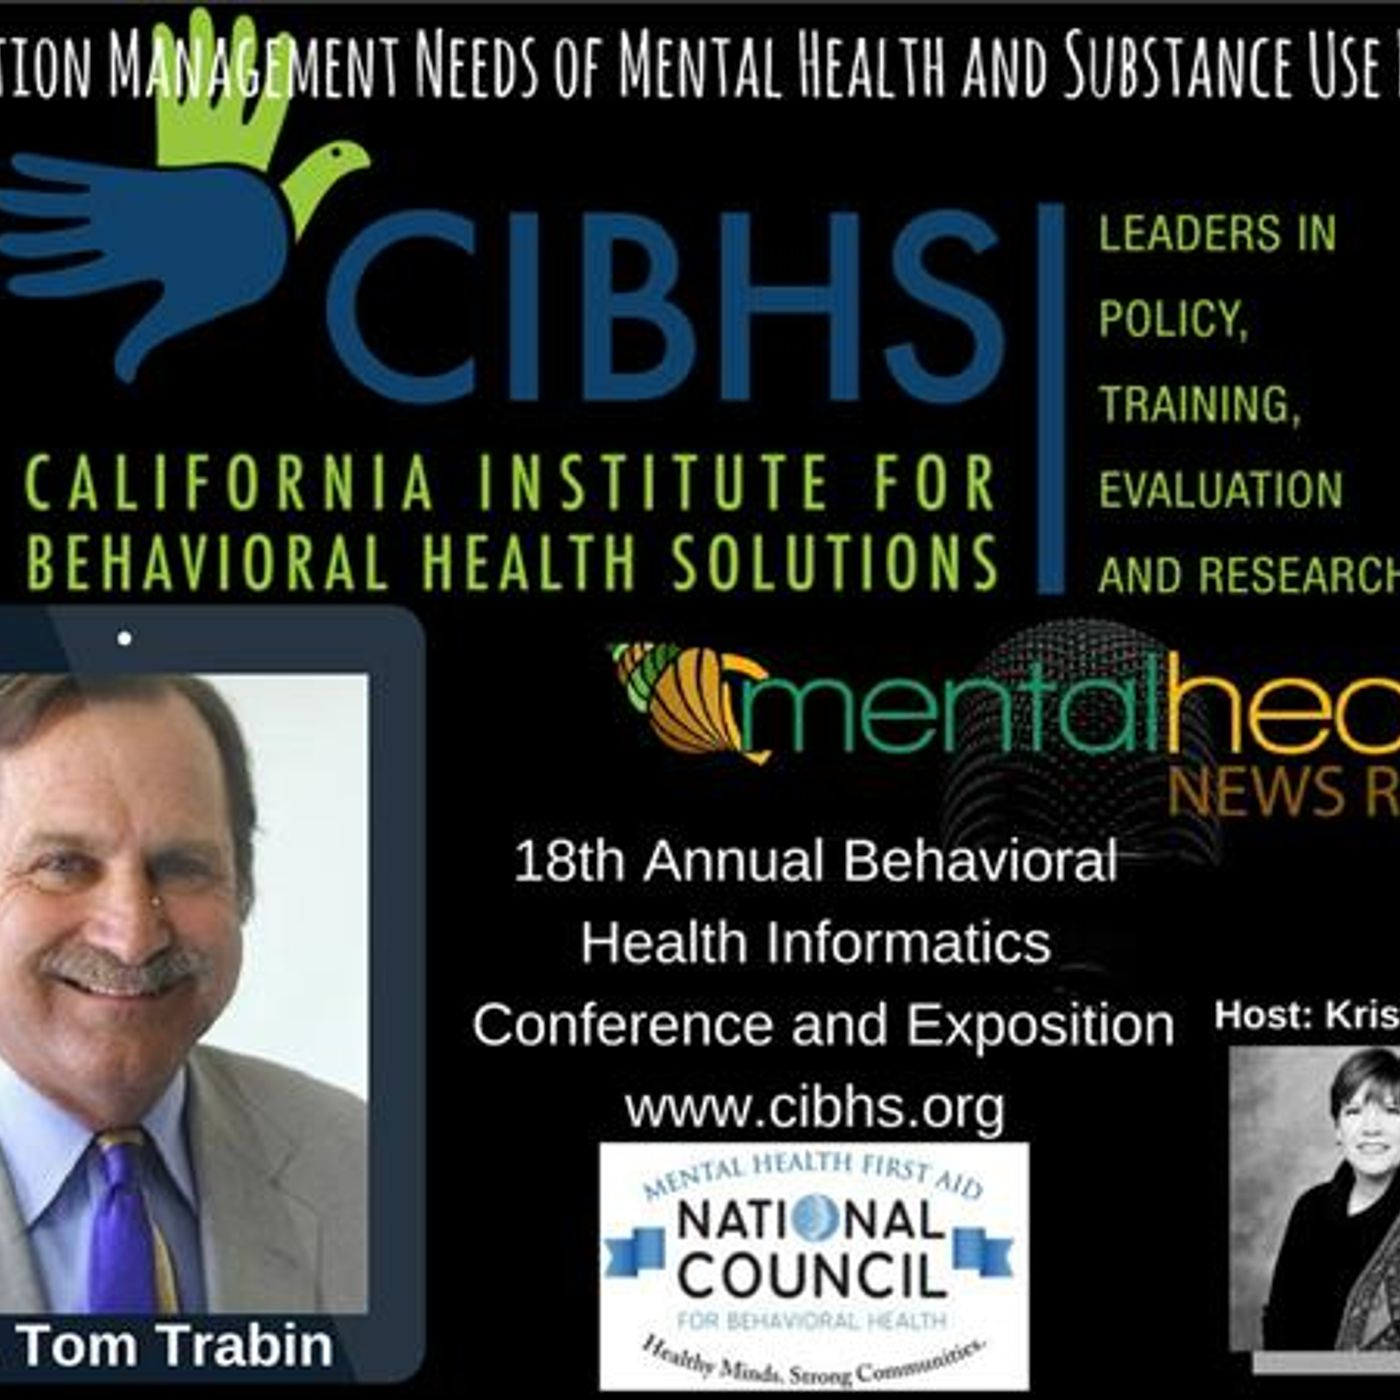 Mental Health News Radio - Information Management Needs of Mental Health and Substance Use Programs